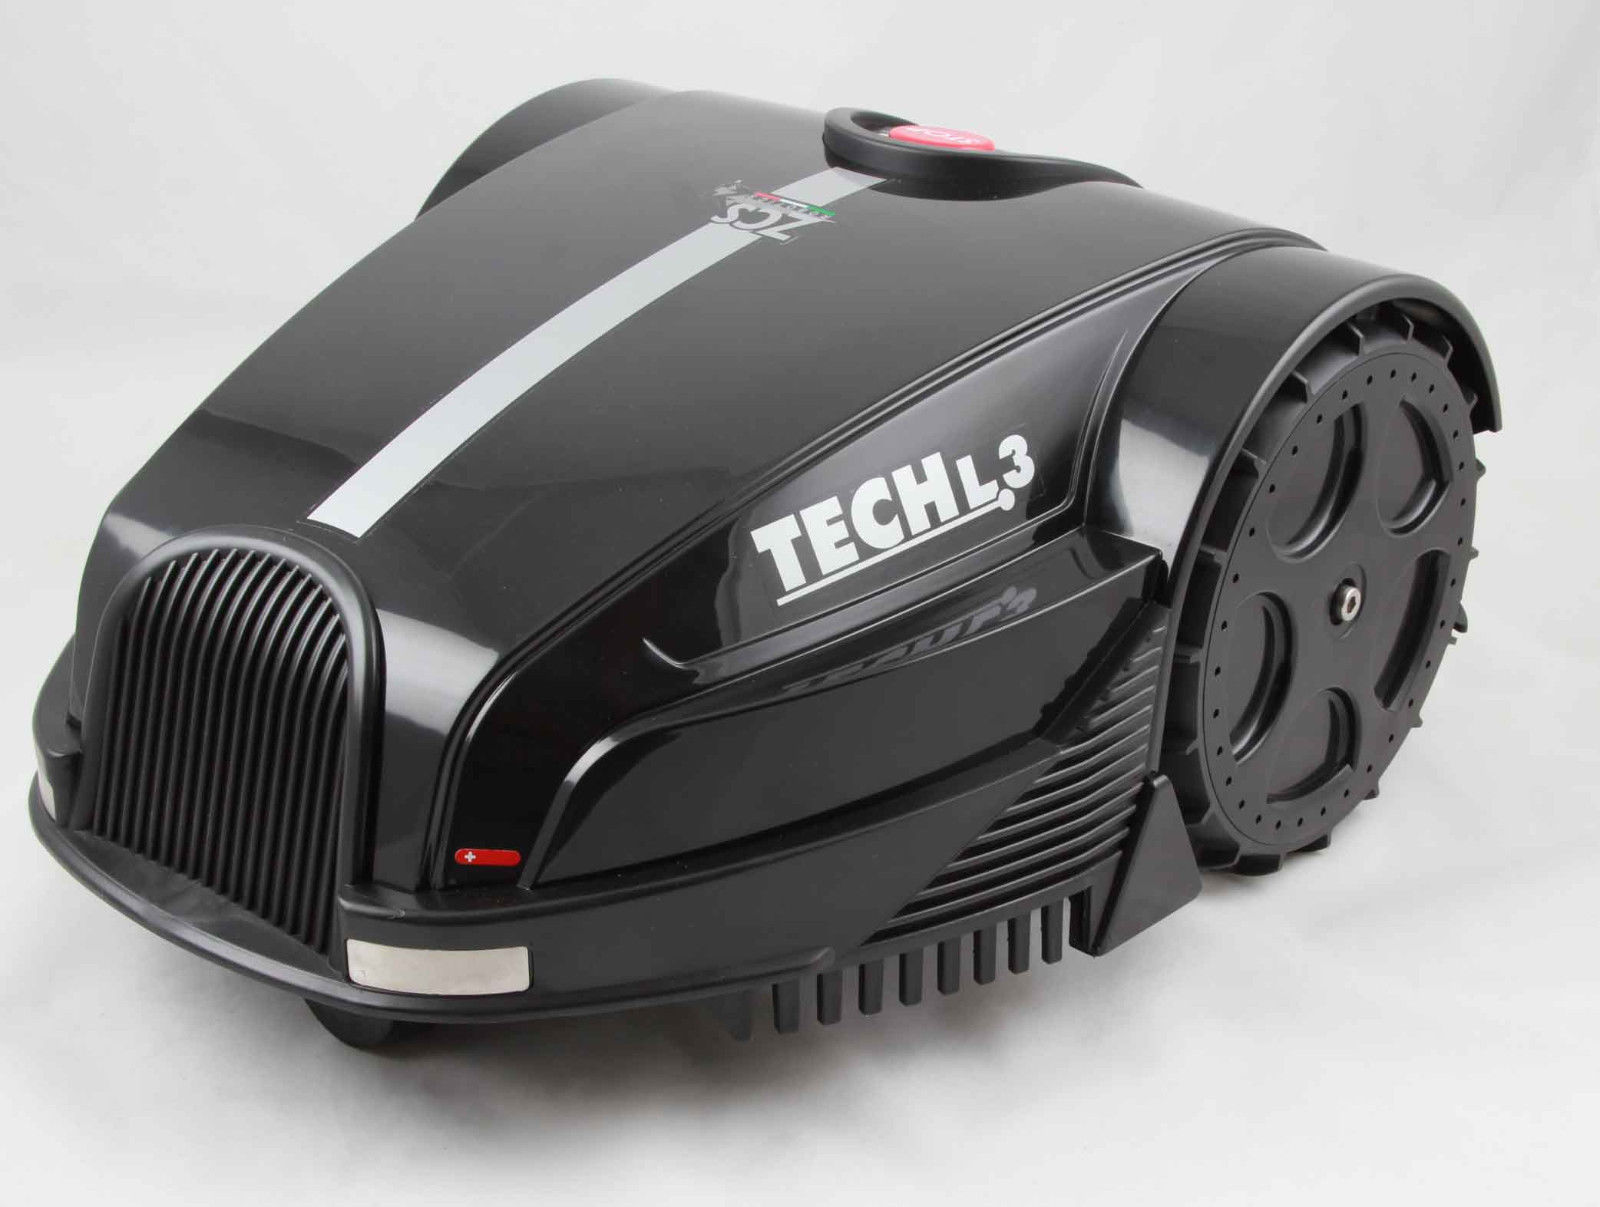 Tech Line Robotic Lawn Mower Line 30 forsale $1,000 usd